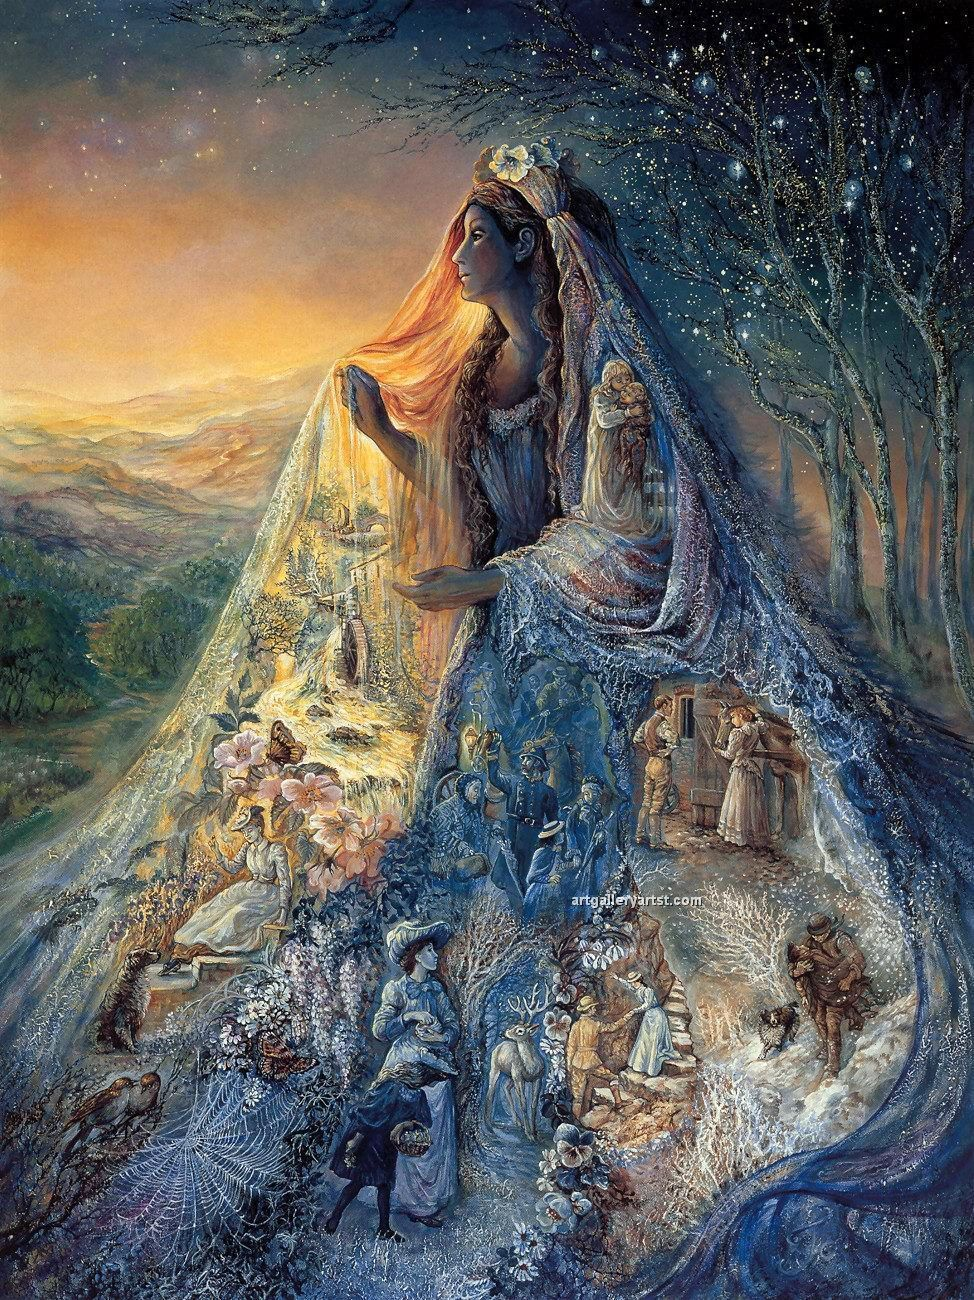 Josephine Wall Paintings Josephine Wall Art Gallery Pictures Josephine Wall Art Fantasy Art